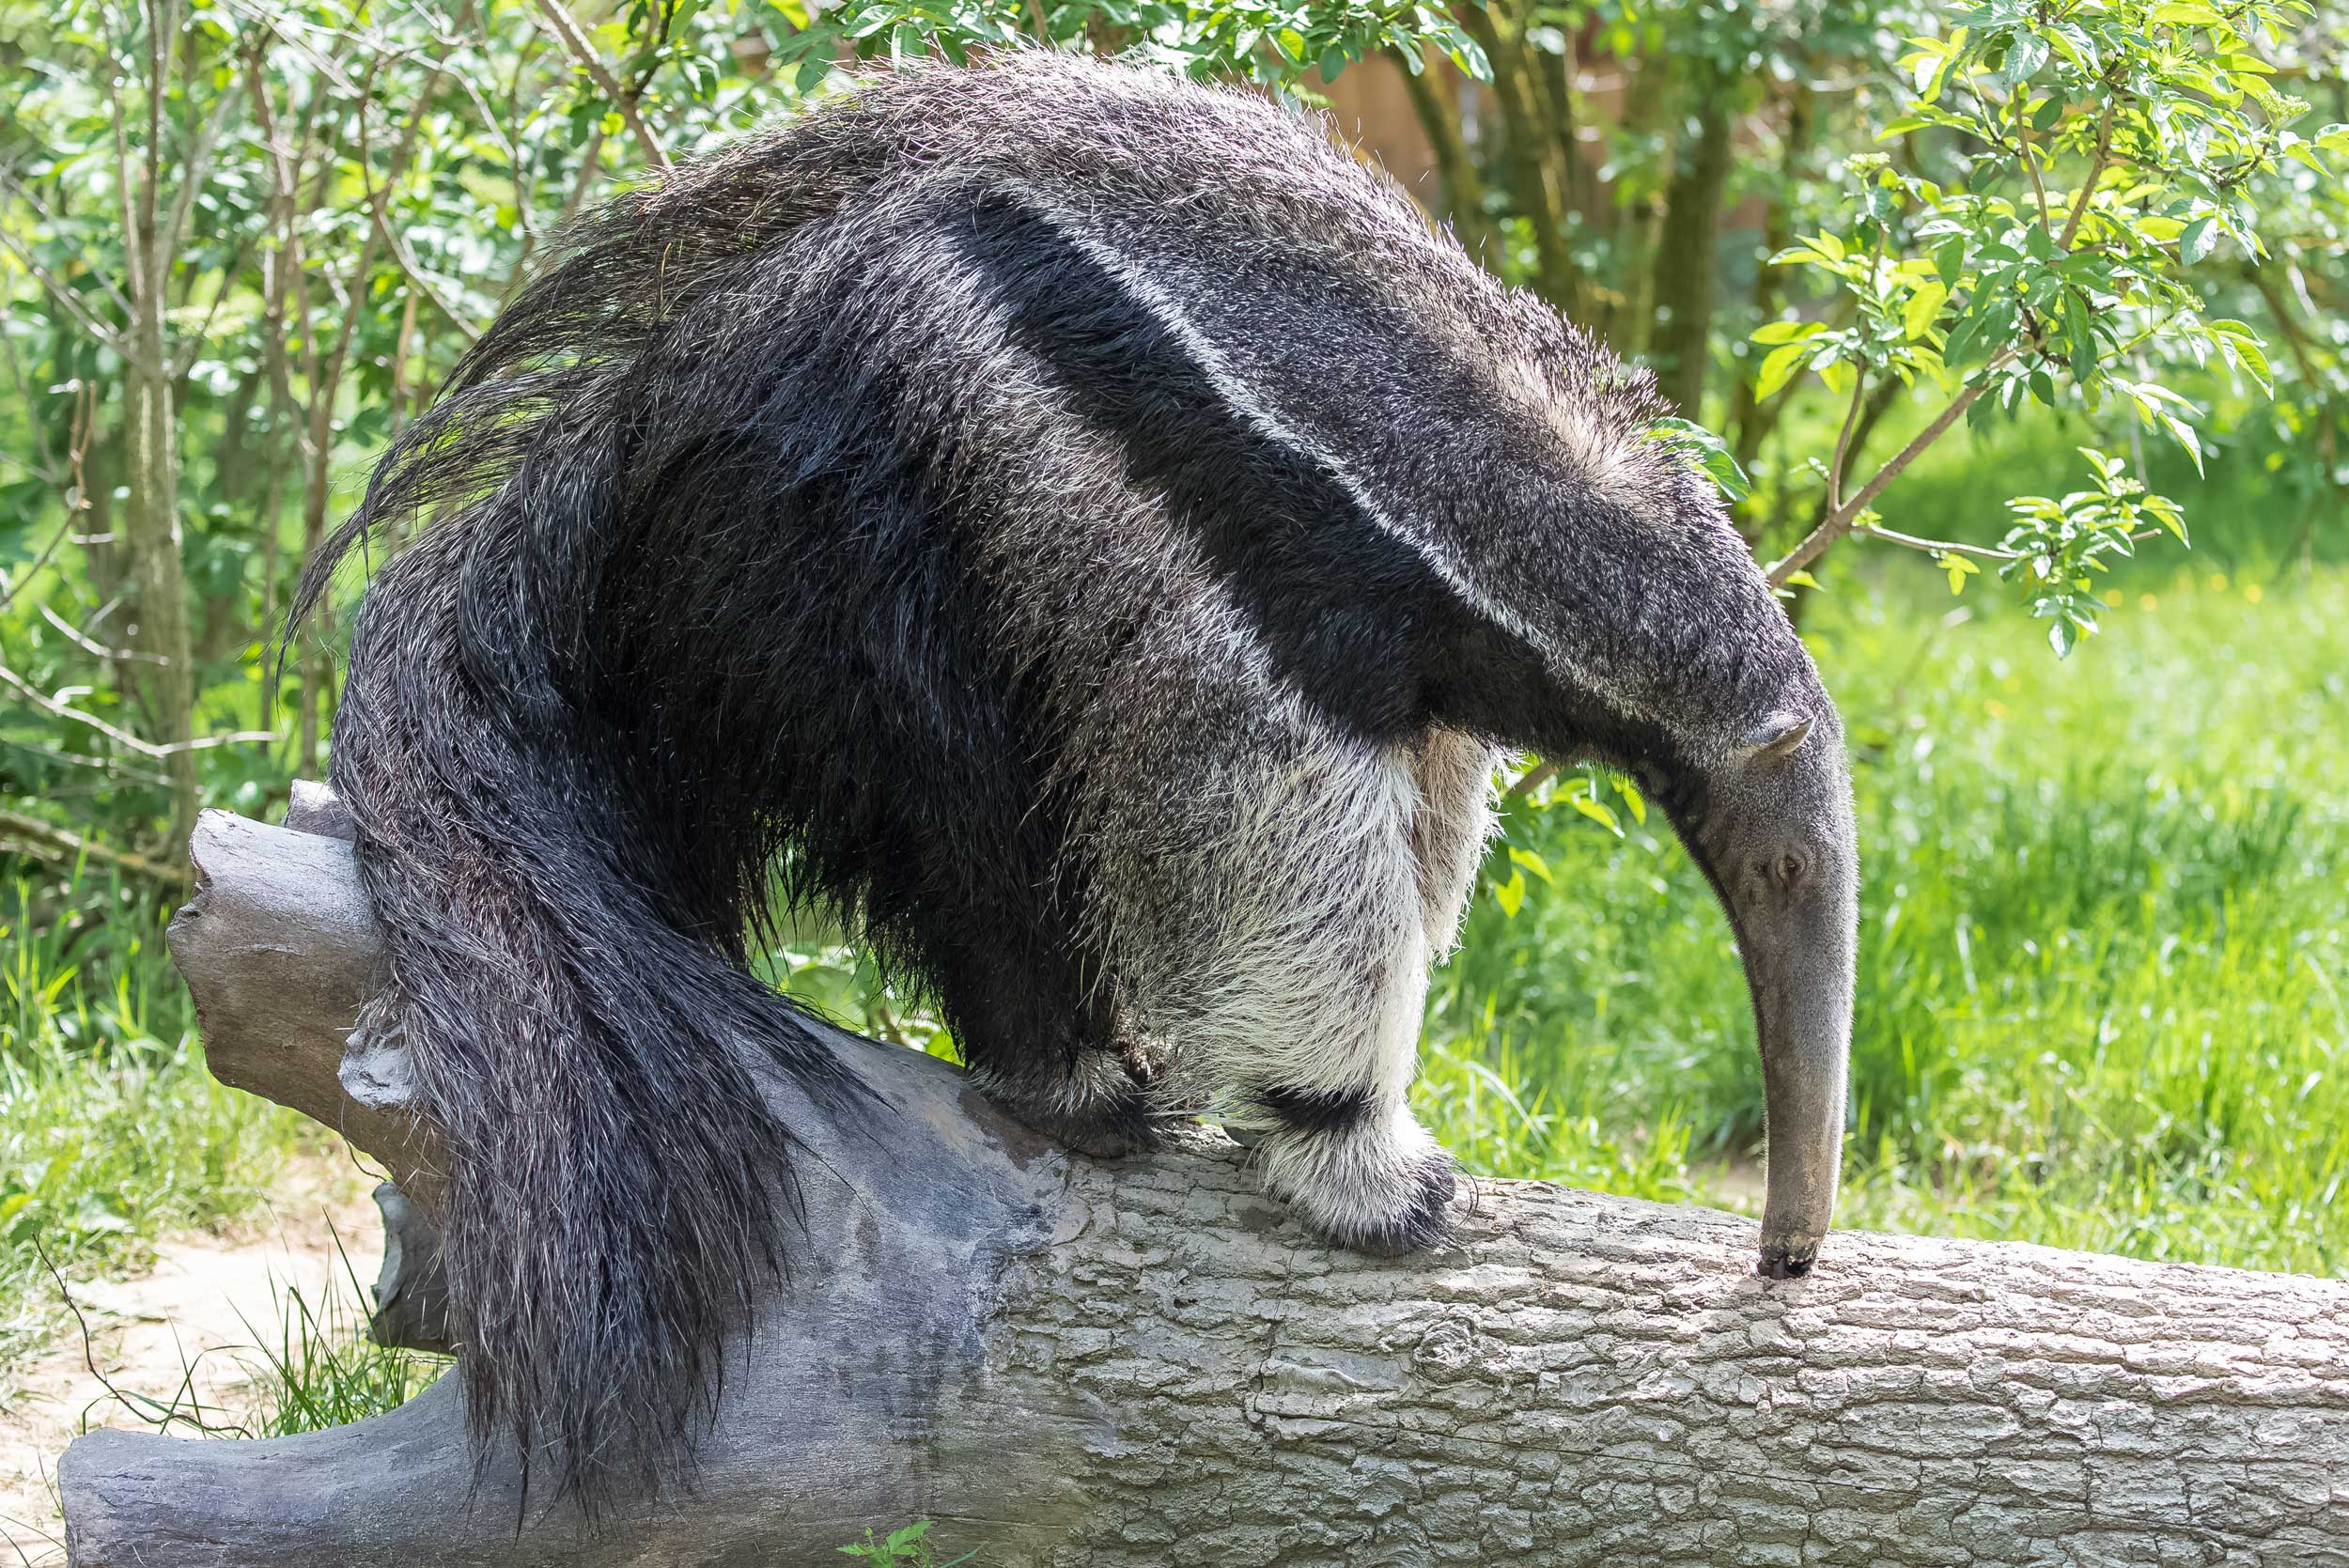 Long-snouted anteater on a fallen tree trunk, Argentina